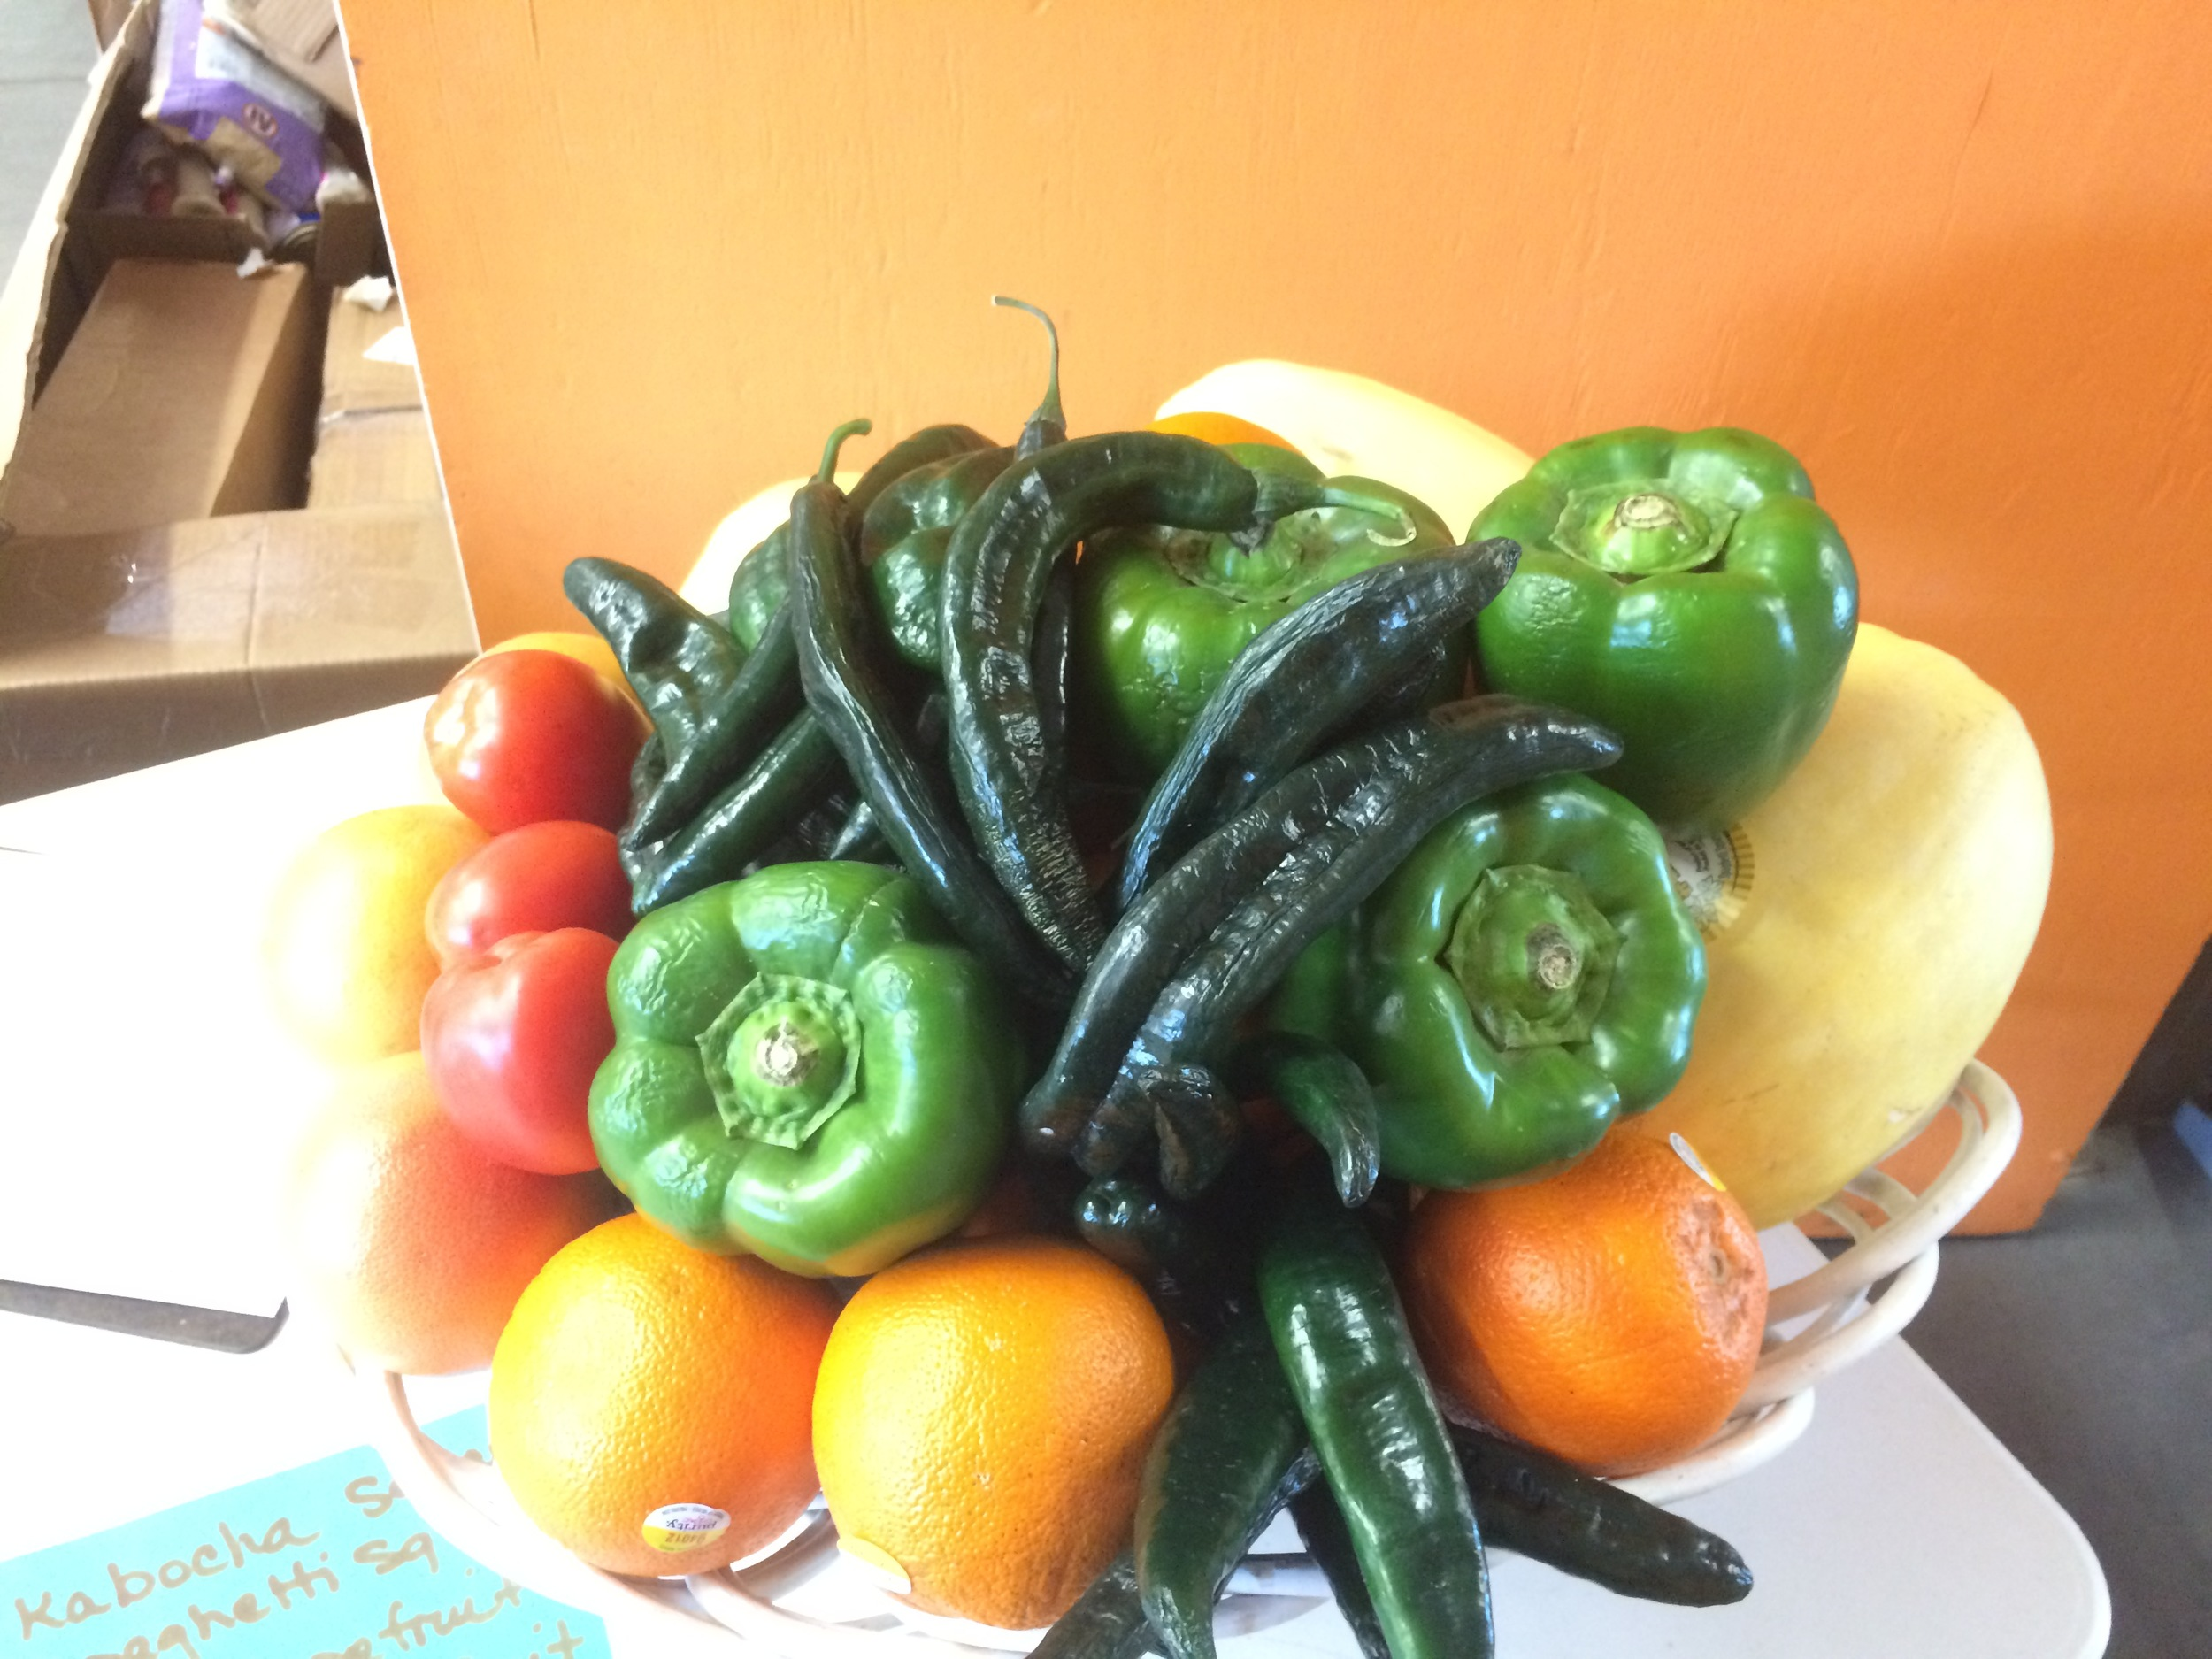 Second week pick up at the Market on the Move: 3 Spaghetti Squash, 3 tomatoes, 4 green bell peppers, 3 kabocha squash, 8 grapefruits and 10 oranges!